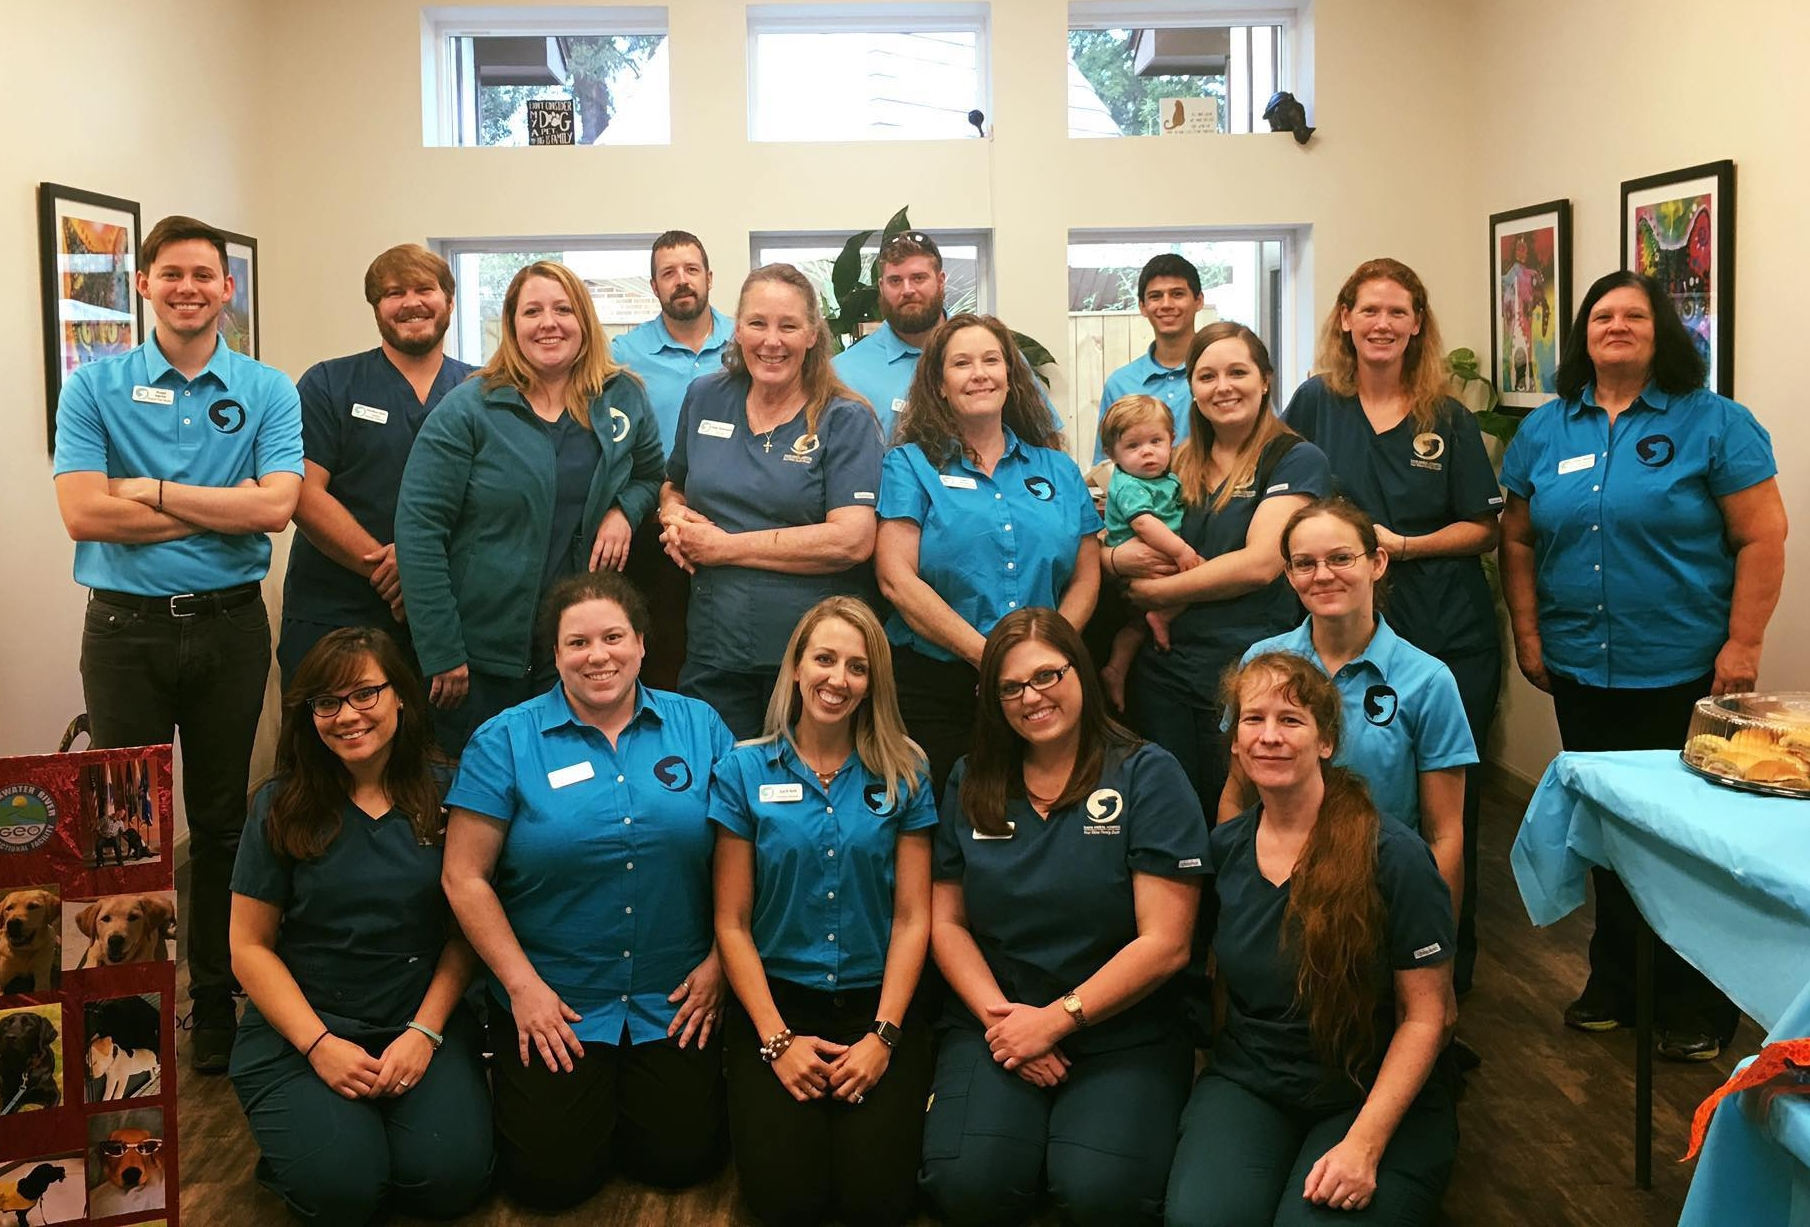 Our Family to Yours. - We're always hard at work to provide you with the best care. We believe you are family here.